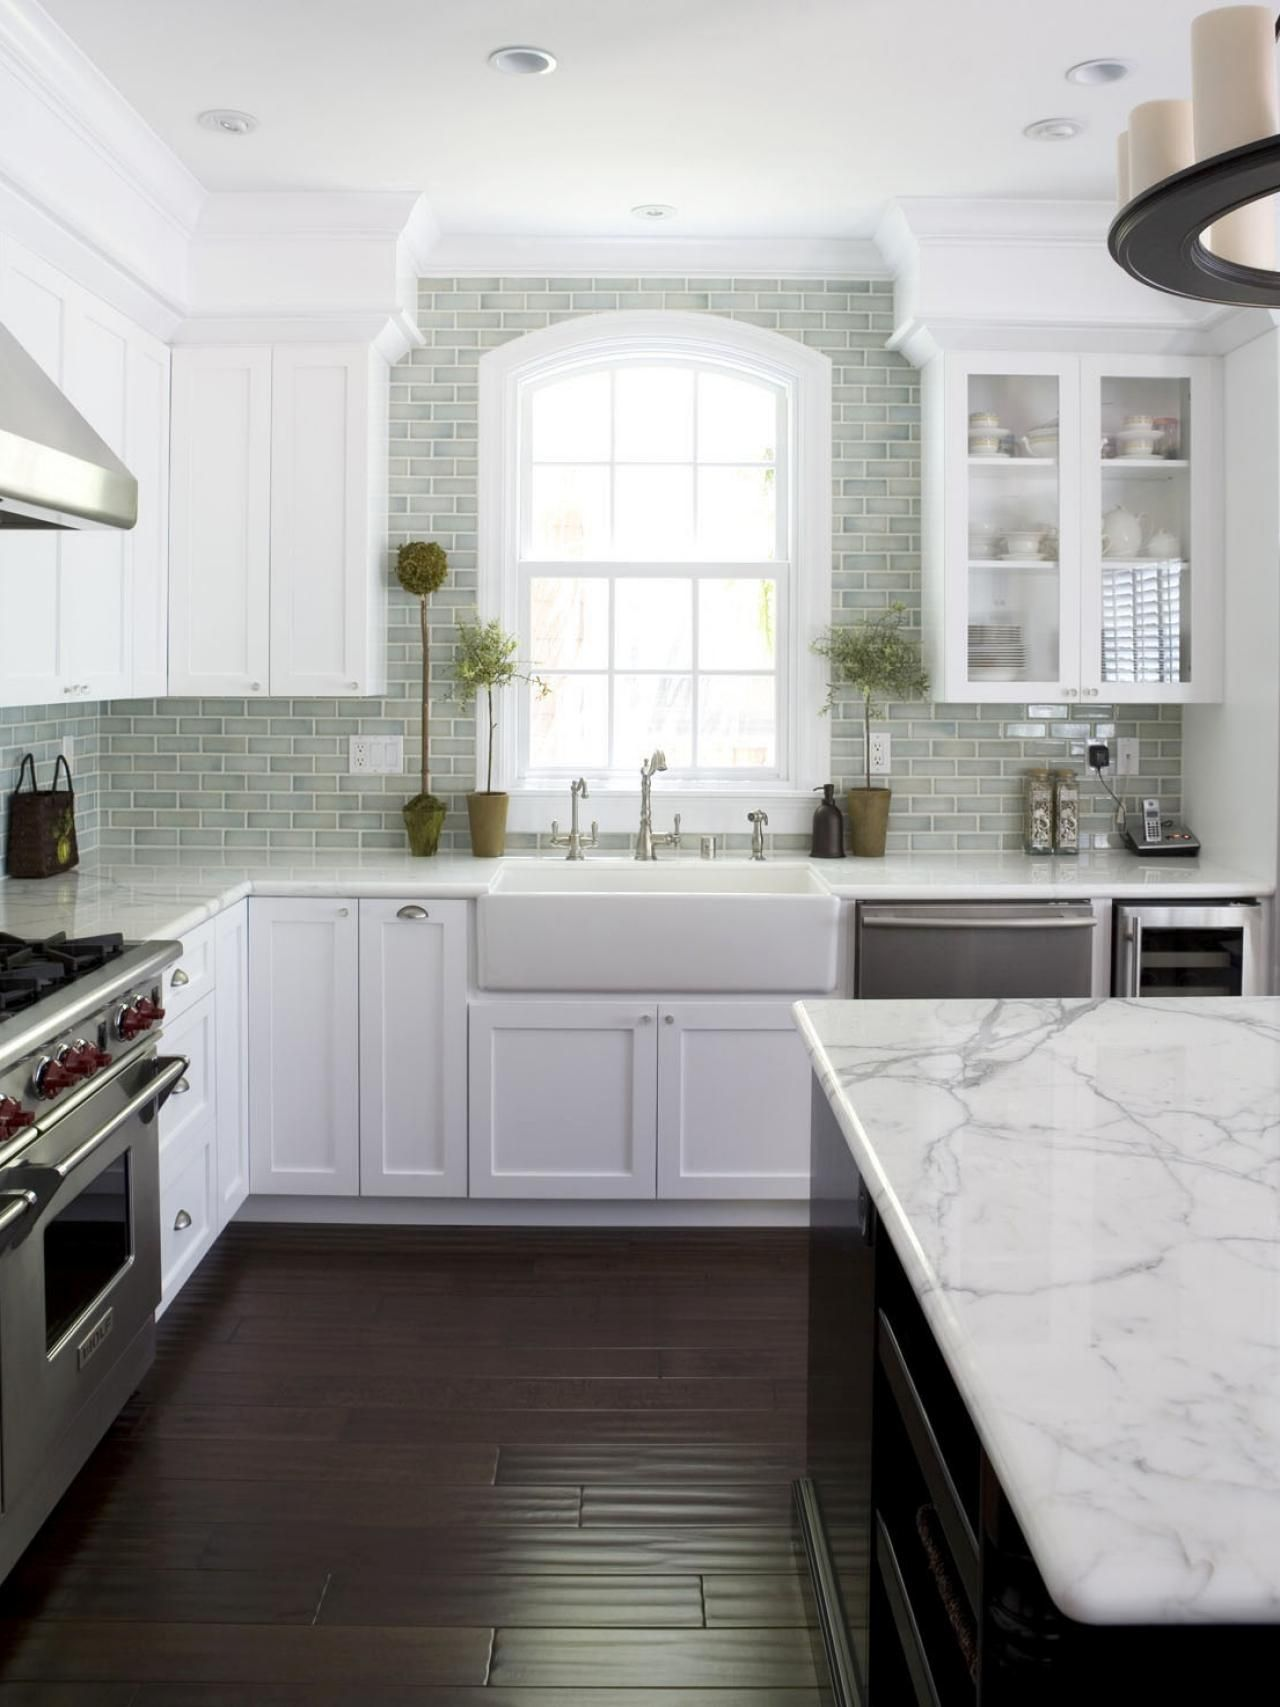 White Kitchens Our 55 Favorite White Kitchens Countertops Cabinets And Window